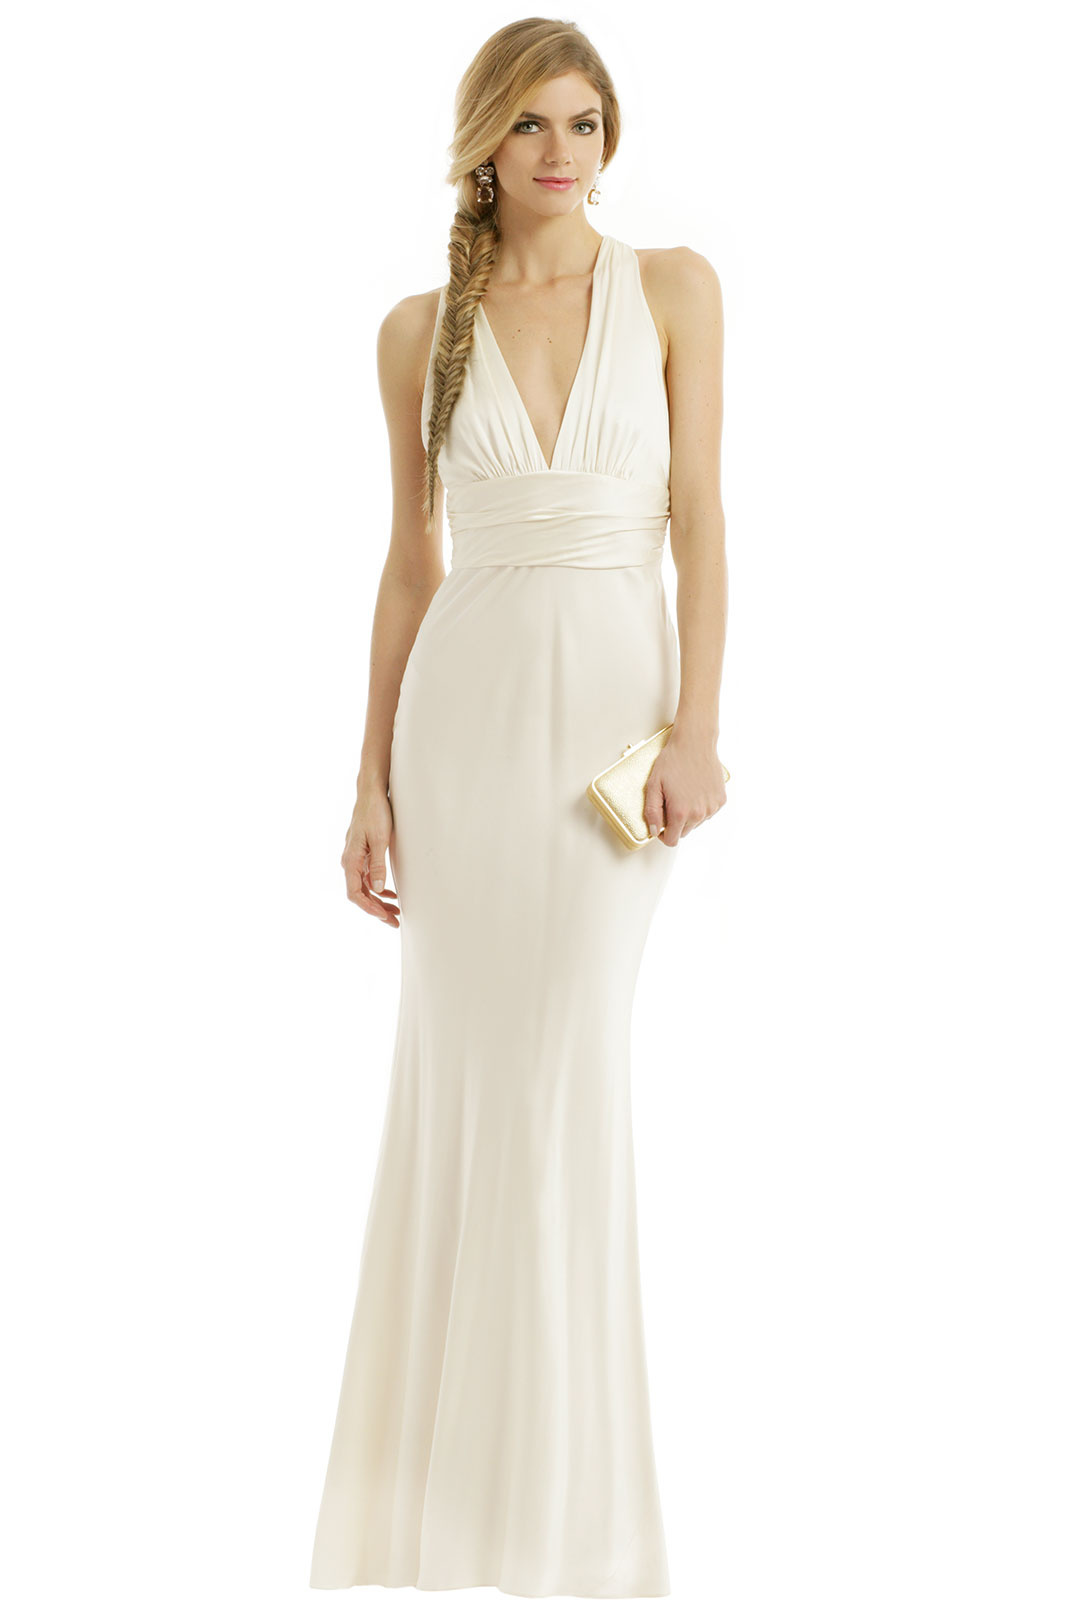 What to wear designer dresses to rent for any kind of summer wedding brideblacktie2 brideblacktie junglespirit Gallery